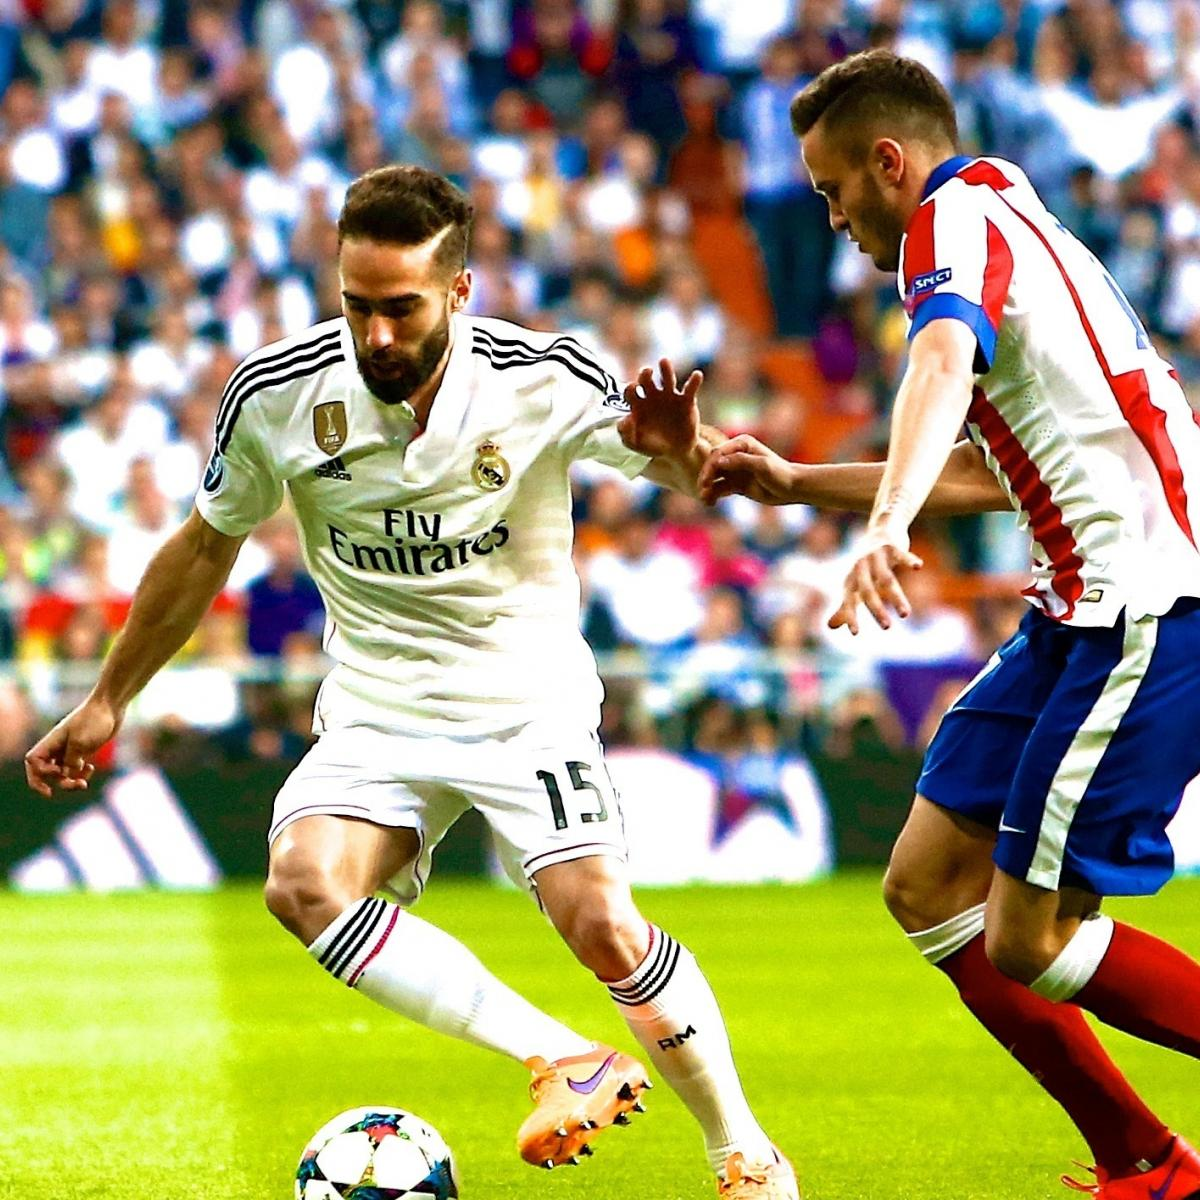 Psg Vs Chelsea Live Score Highlights From Champions: Real Madrid Vs Atletico Madrid: Live Score, Highlights Of